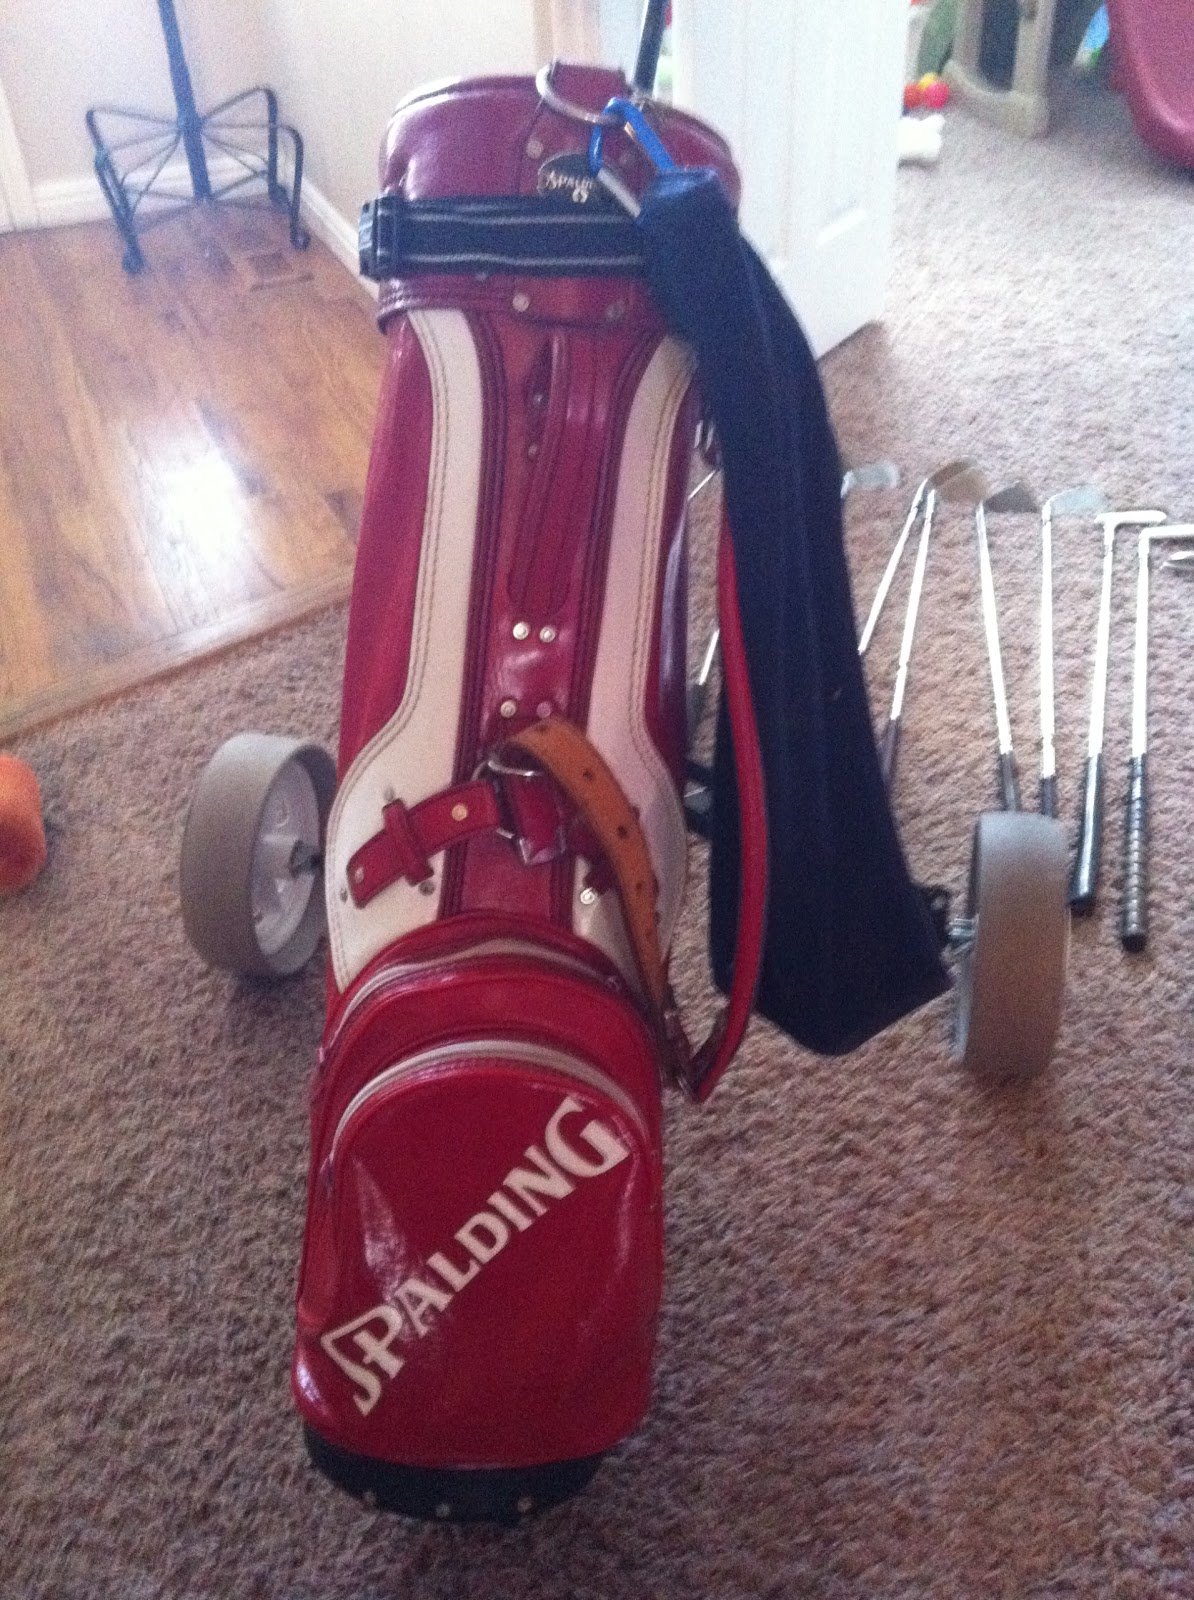 2 Chair Bistro Set Small Folding Camping Online Yard Sale: Vintage Spalding Red Leather Golf Bag And Cart